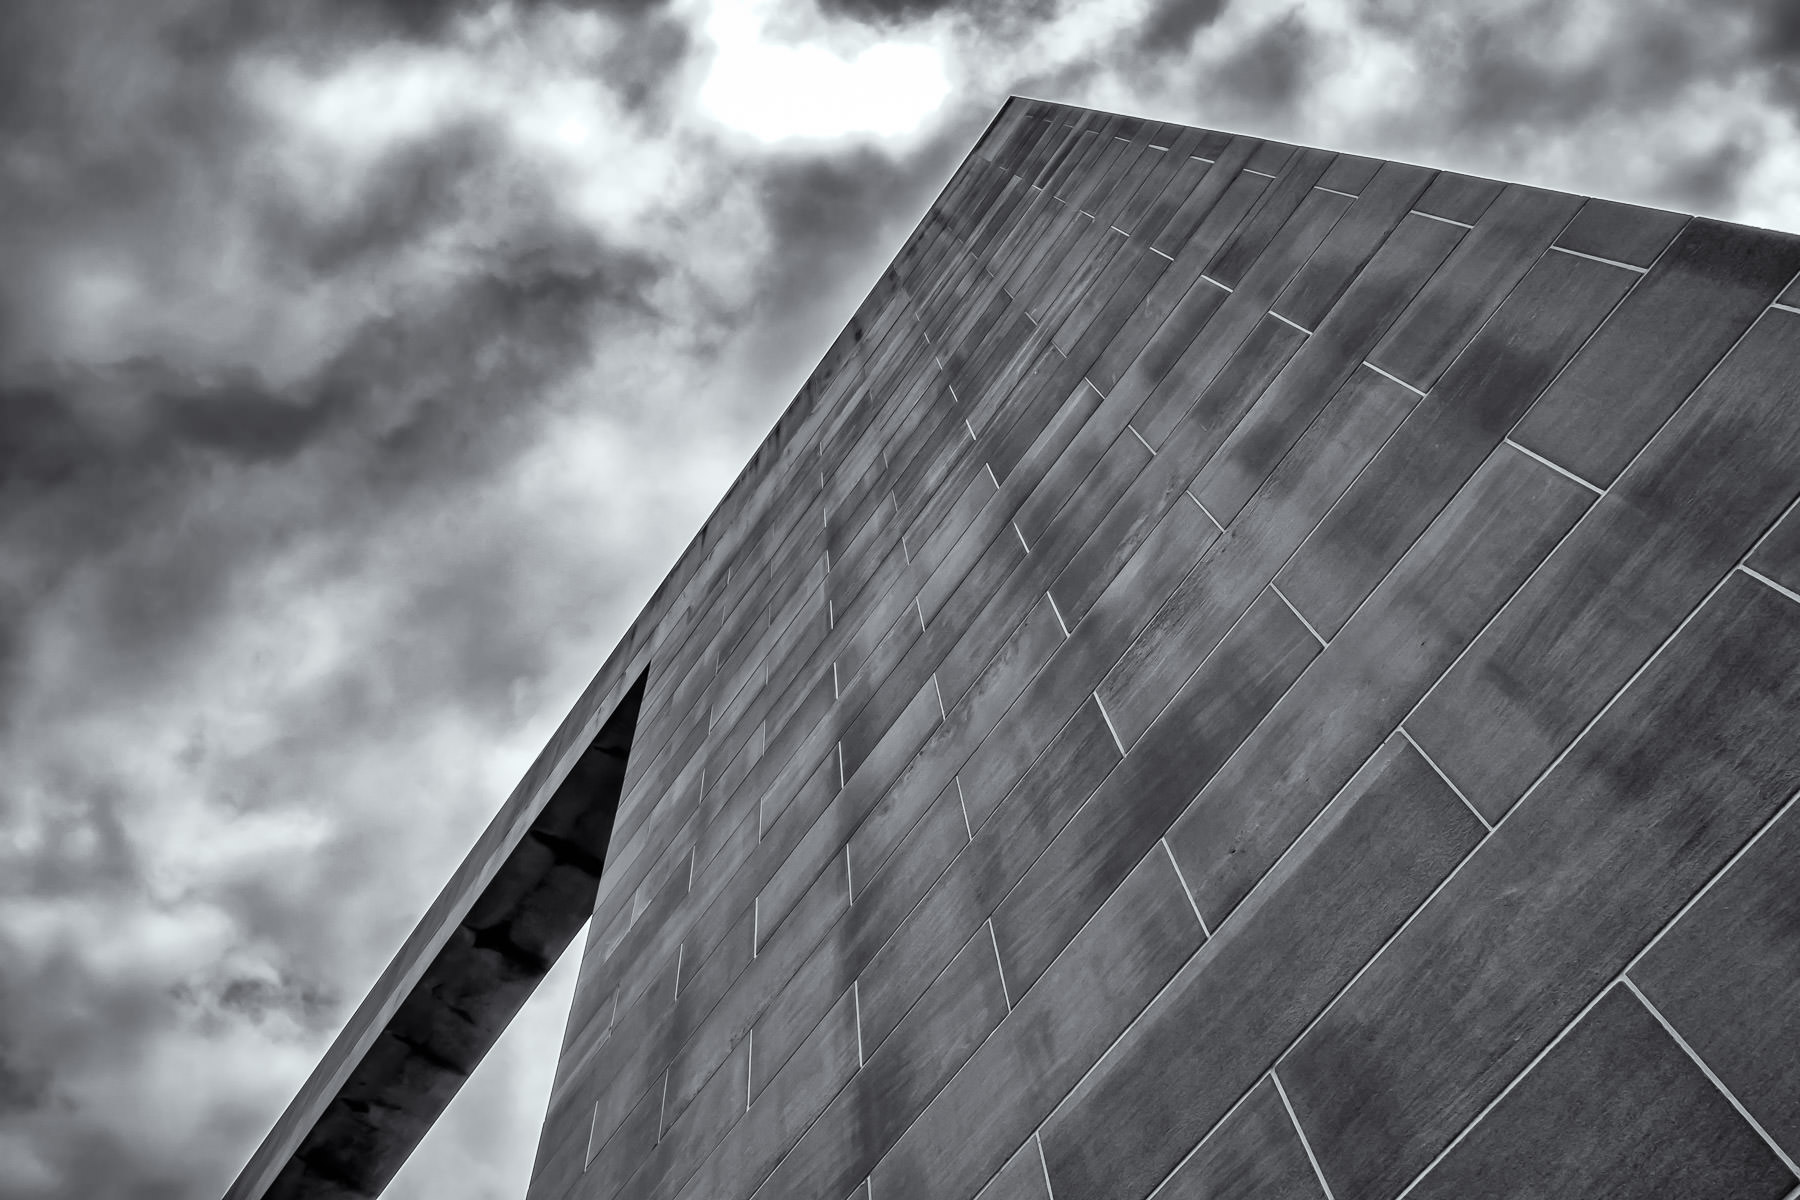 The Emery Reves Arch of Peace rises into the cloudy sky at the Meyerson Symphony Center in the Dallas Arts District.